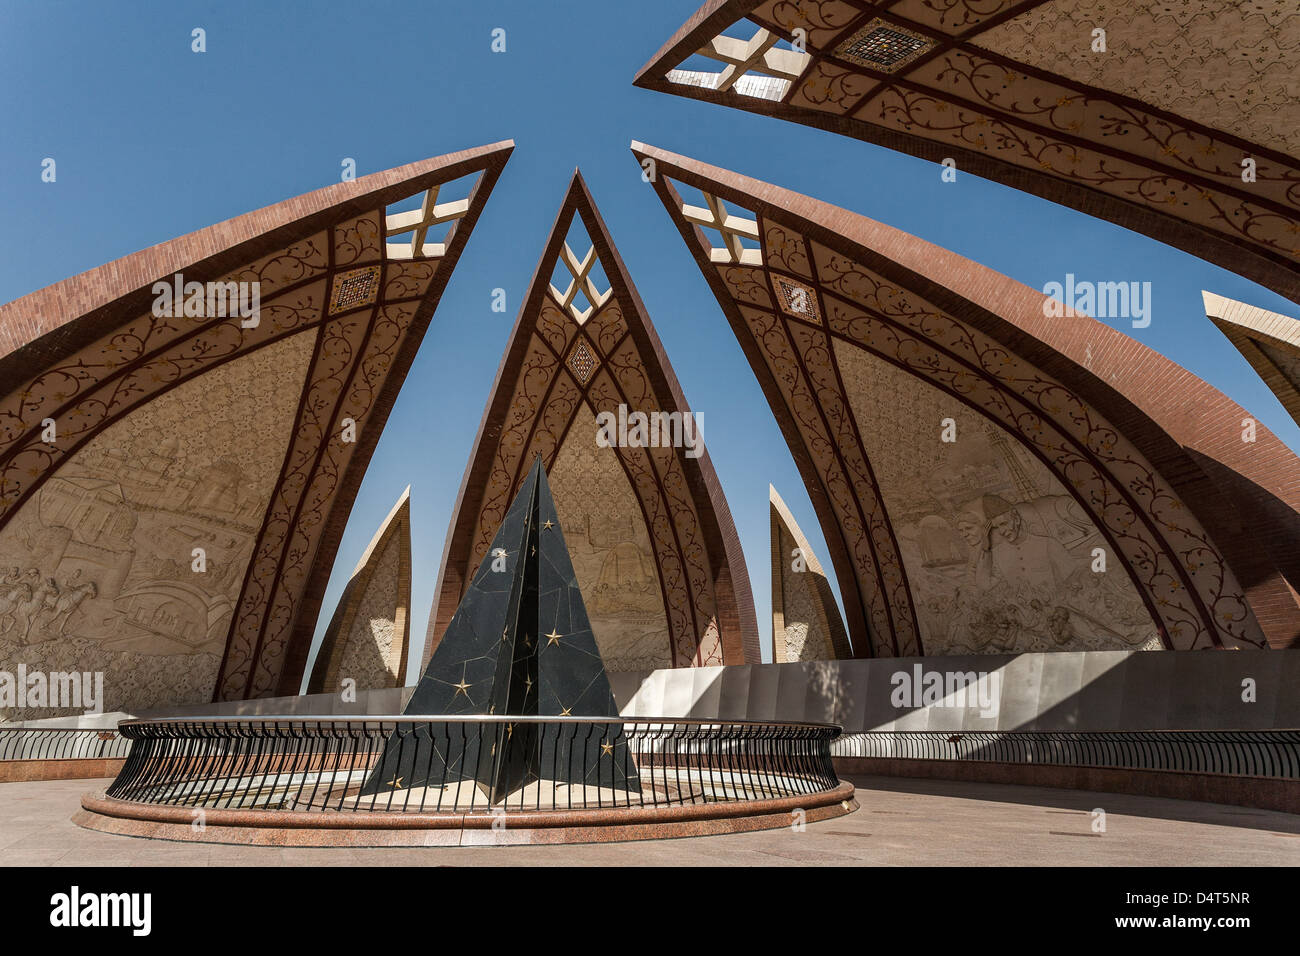 The Pakistan Monument in Islamabad, Pakistan, is a national monument - Stock Image